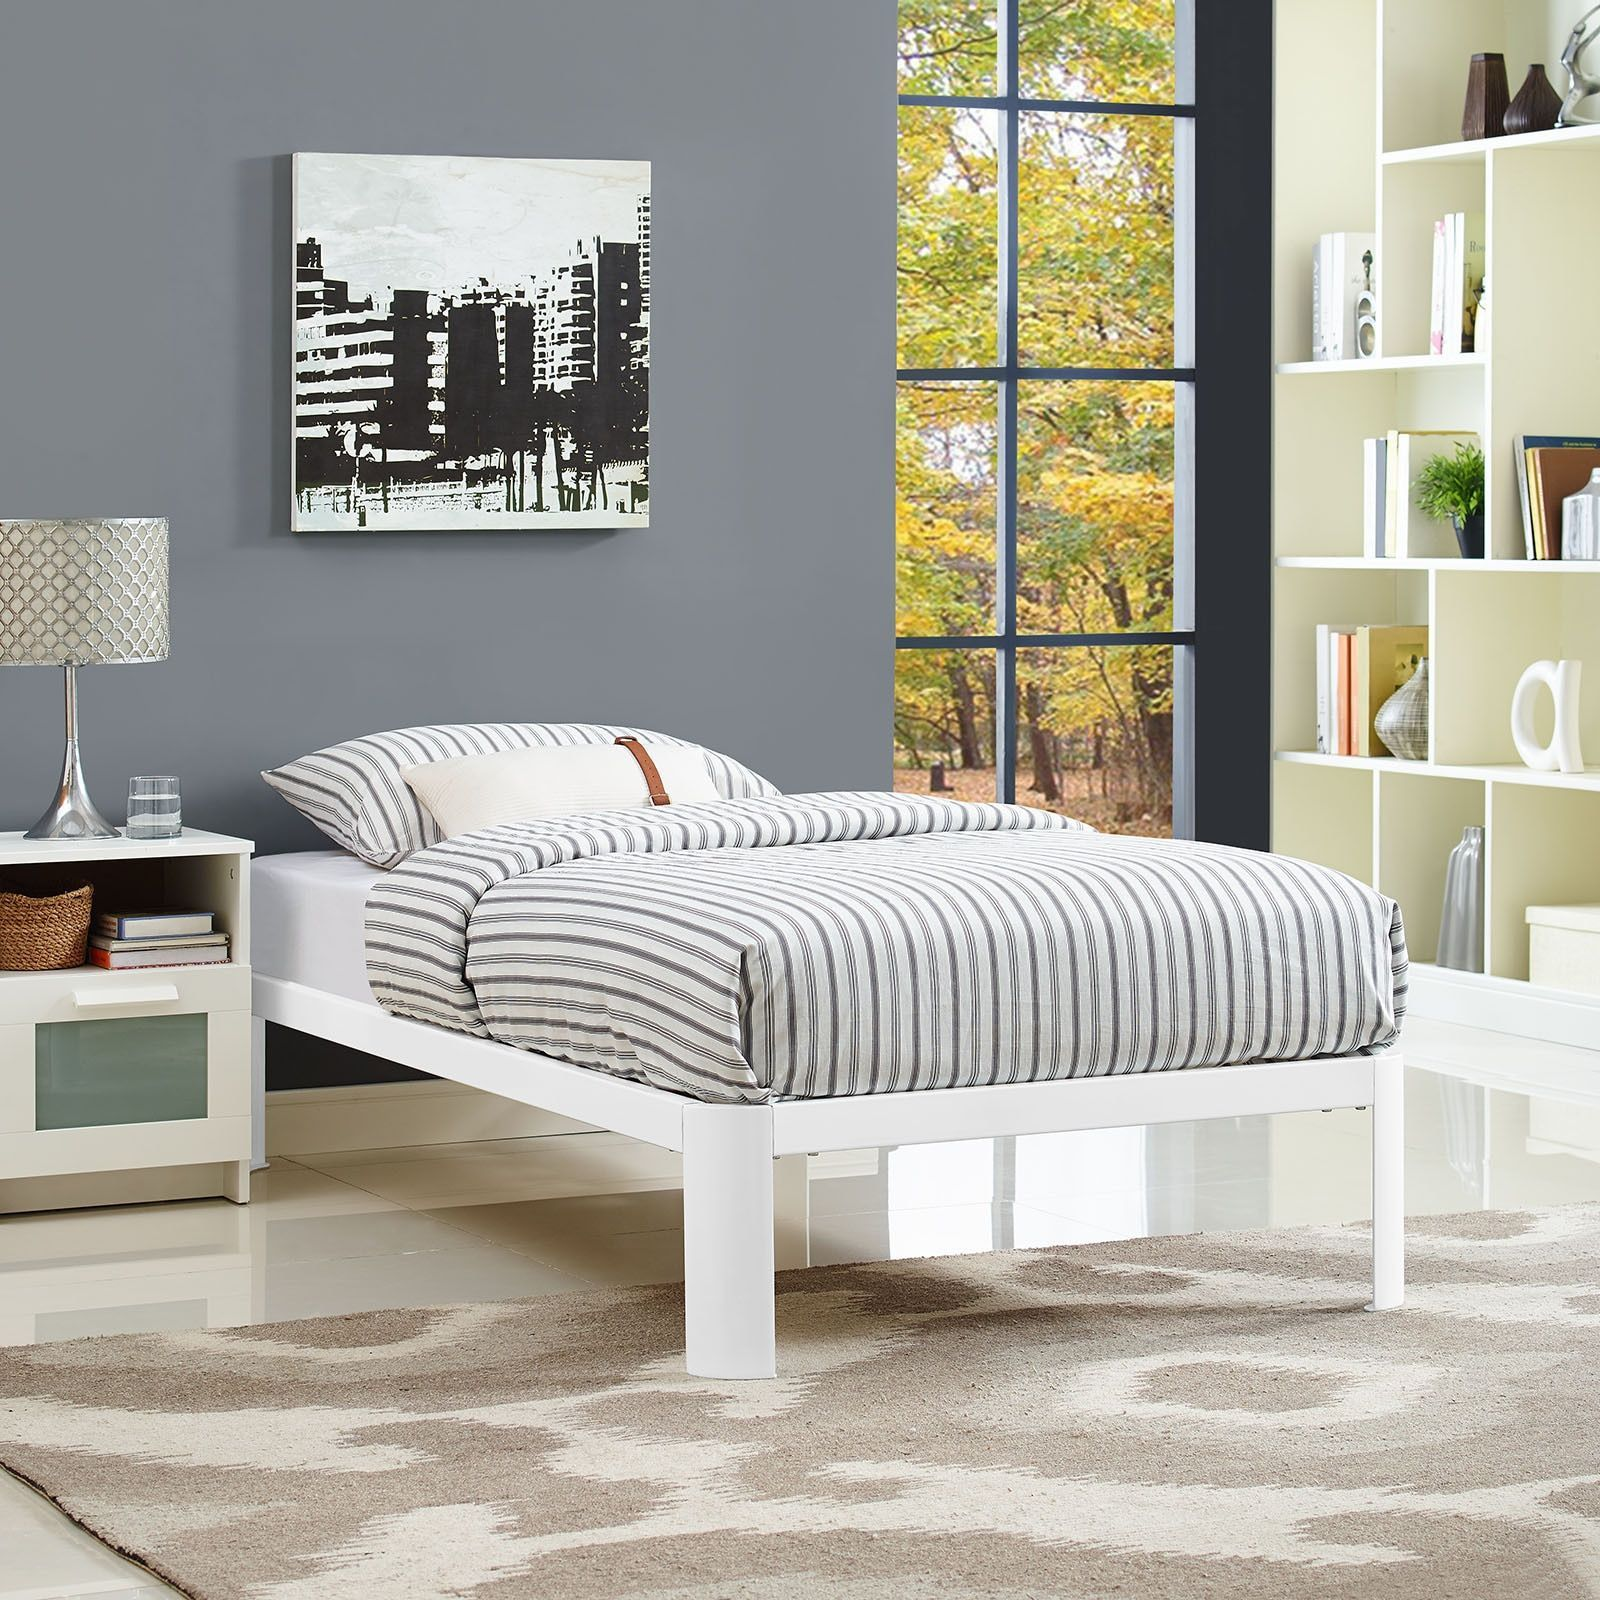 corinne bed frame in white by modway  products beds and twin  - corinne bed frame in white by modway